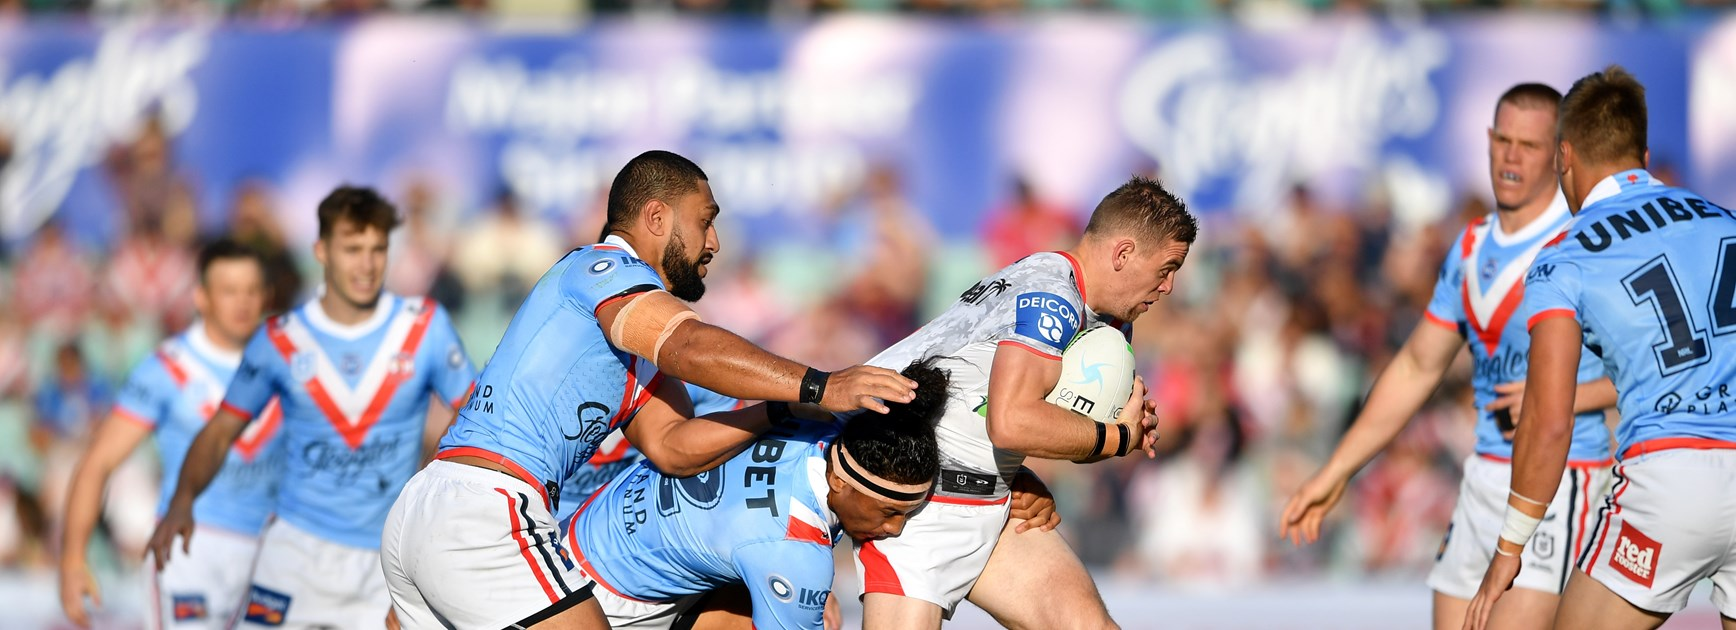 Walker steps up to sink Dragons after Tedesco felled by high shot